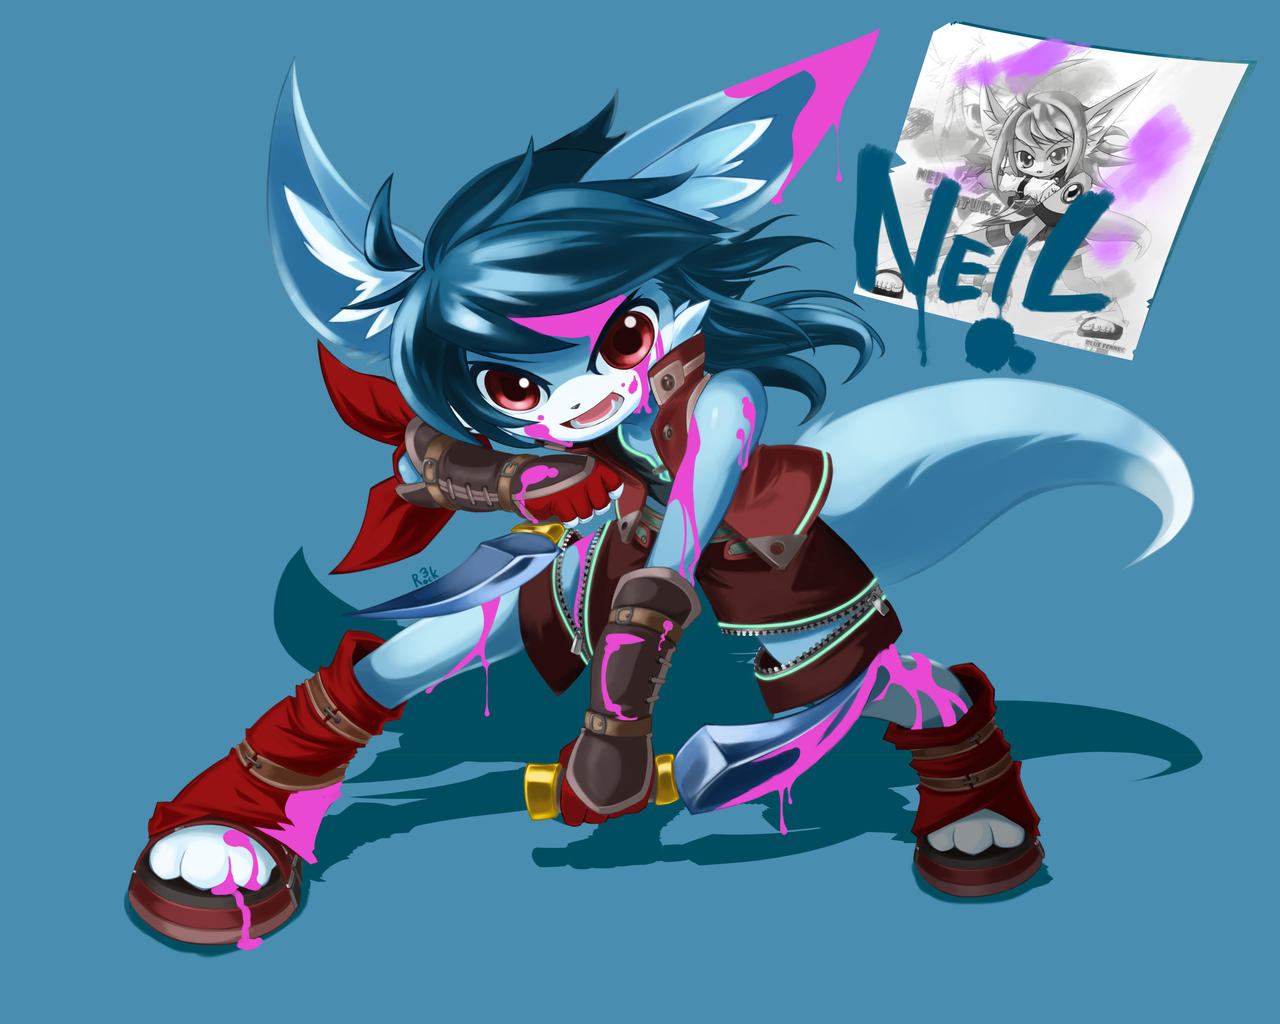 2006 Old Work Origin Character 'Neil' Rework by AnRock3